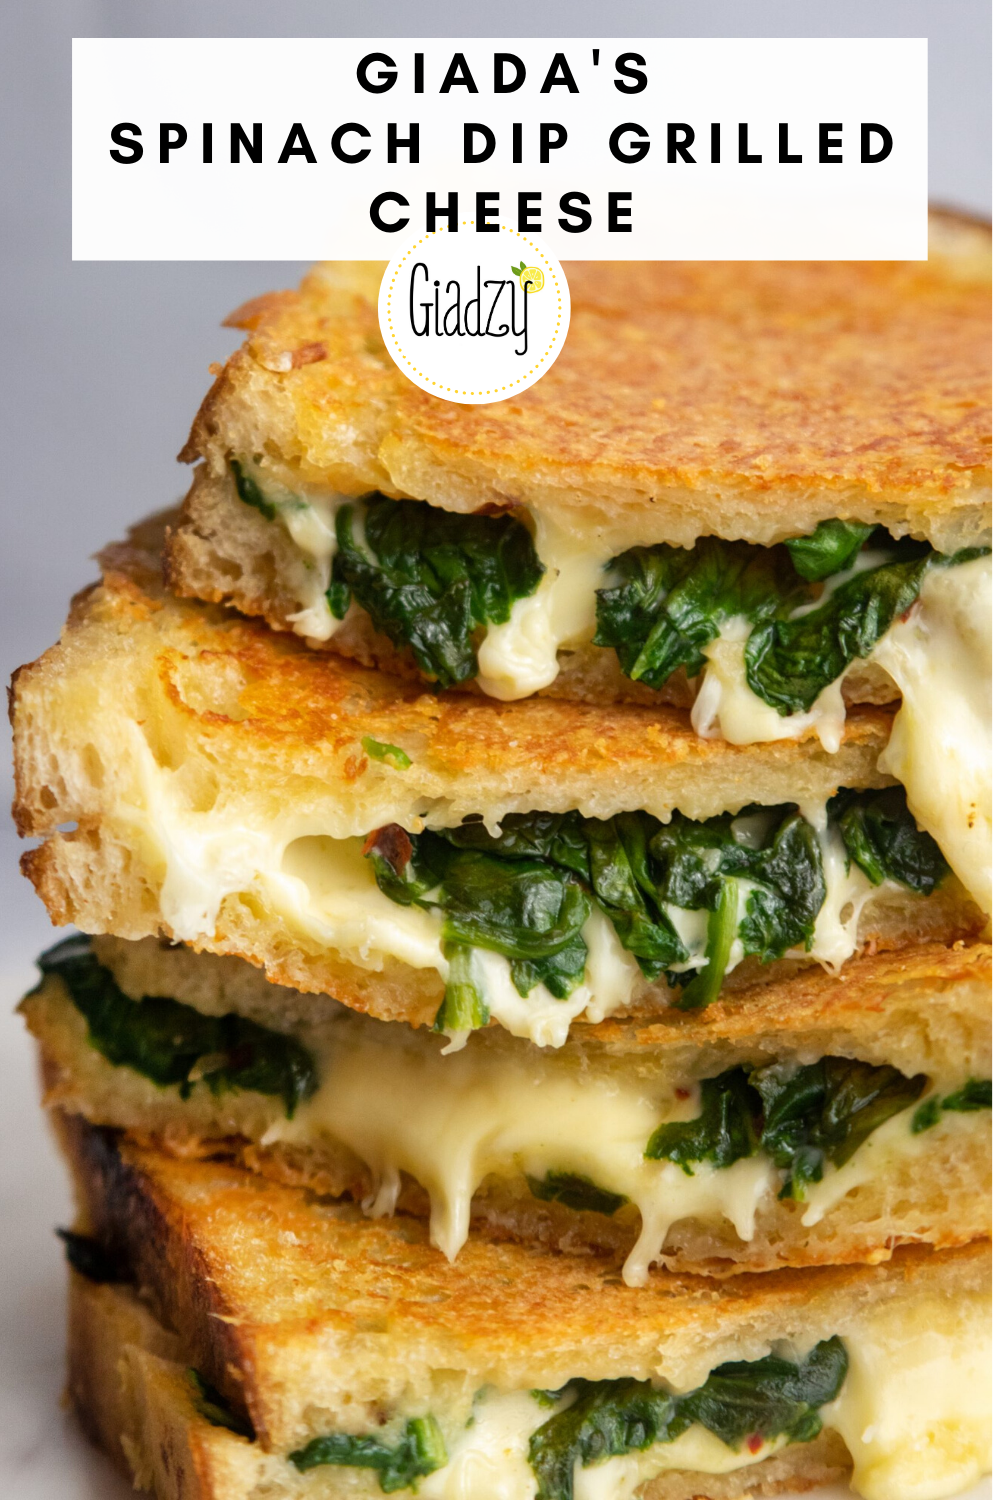 Giada S Spinach Dip Grilled Cheese Giadzy Recipe Recipes Spinach Dip Grilled Cheese